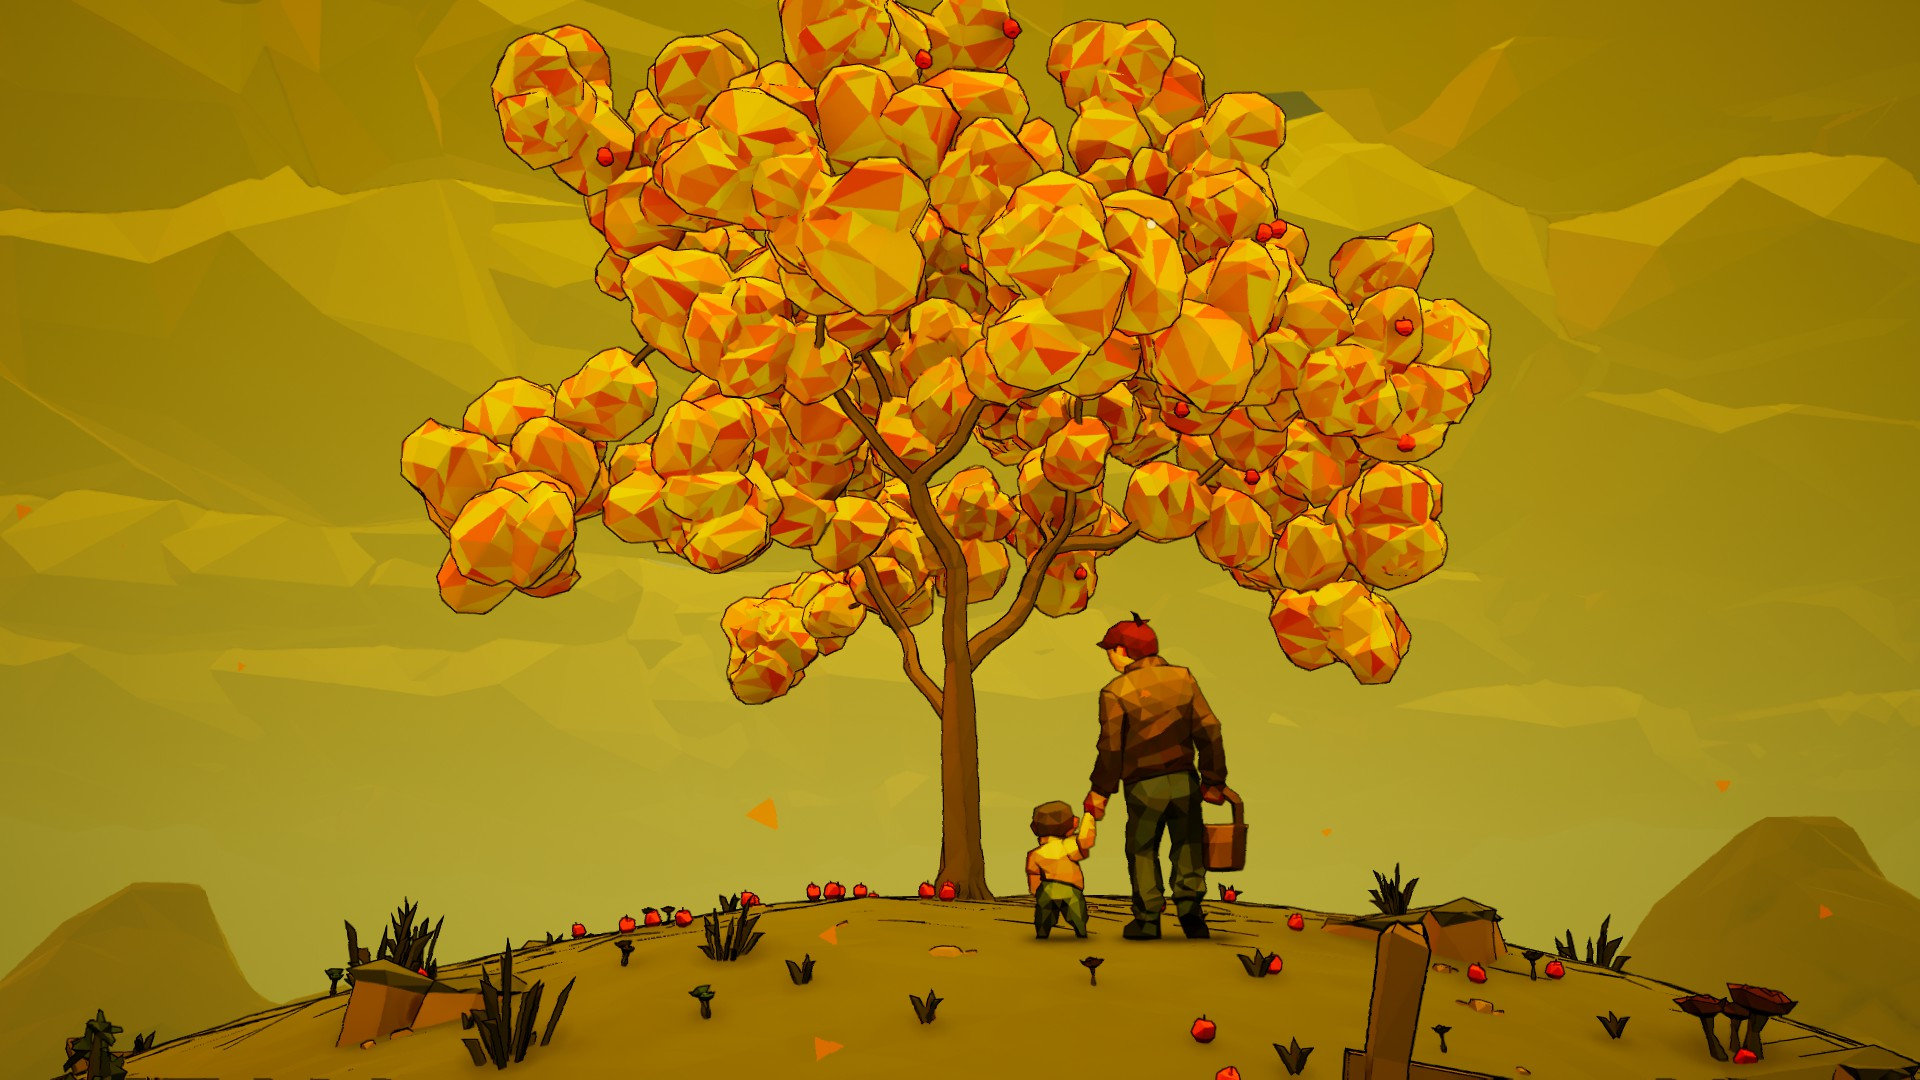 toddler and old man under tree with yellow leaves and apples, 9/10 free steam games